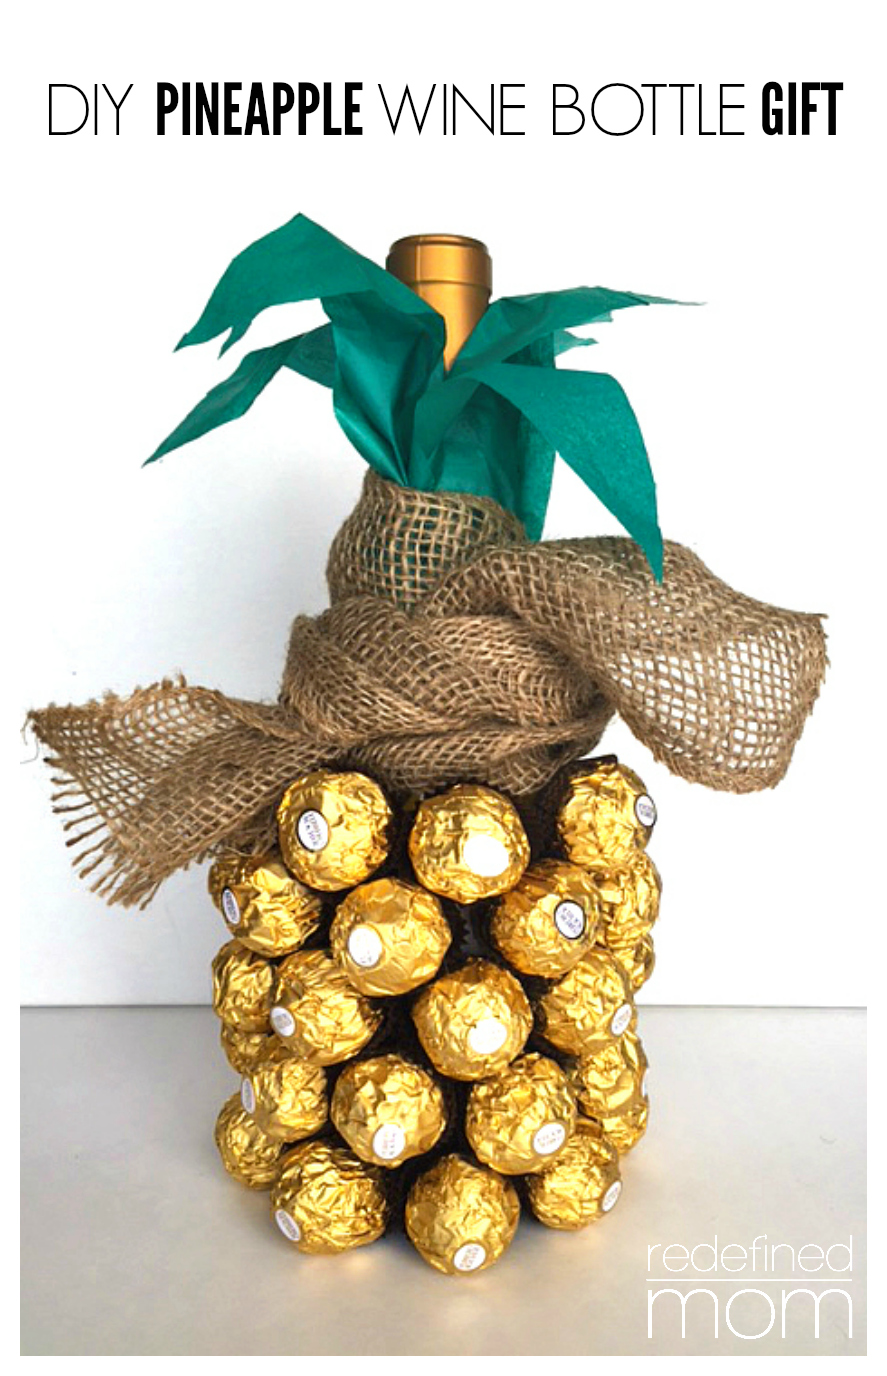 DIY Pineapple Wine Gift Cover 5